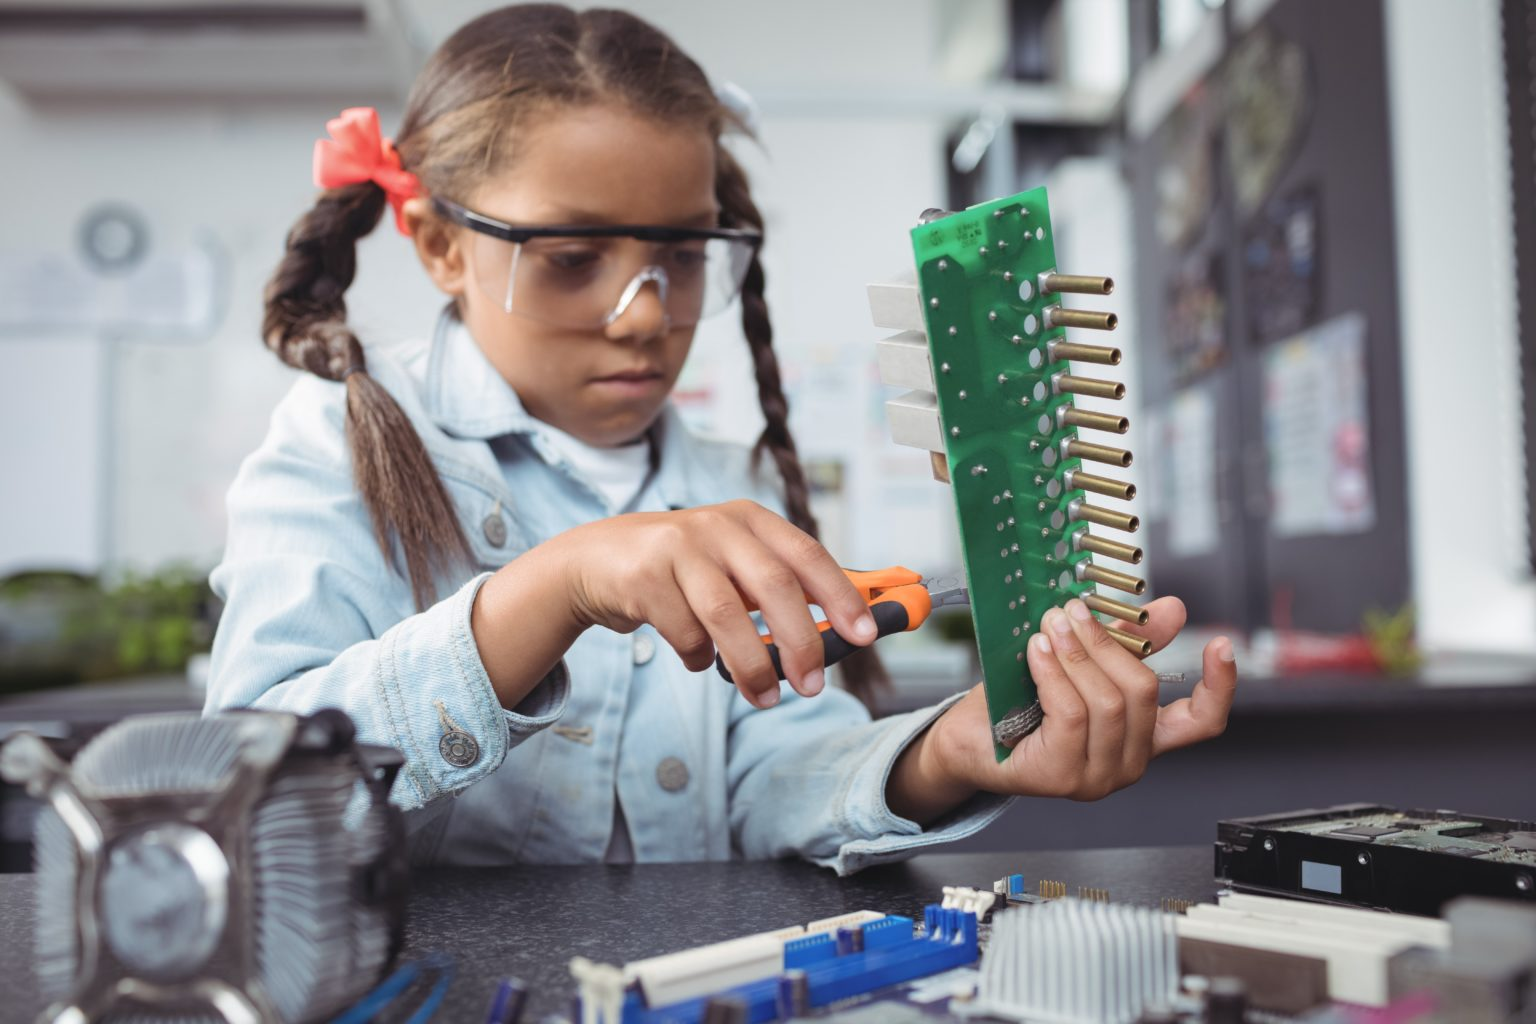 Intel backs movement to encourage more girls to take up careers in engineering